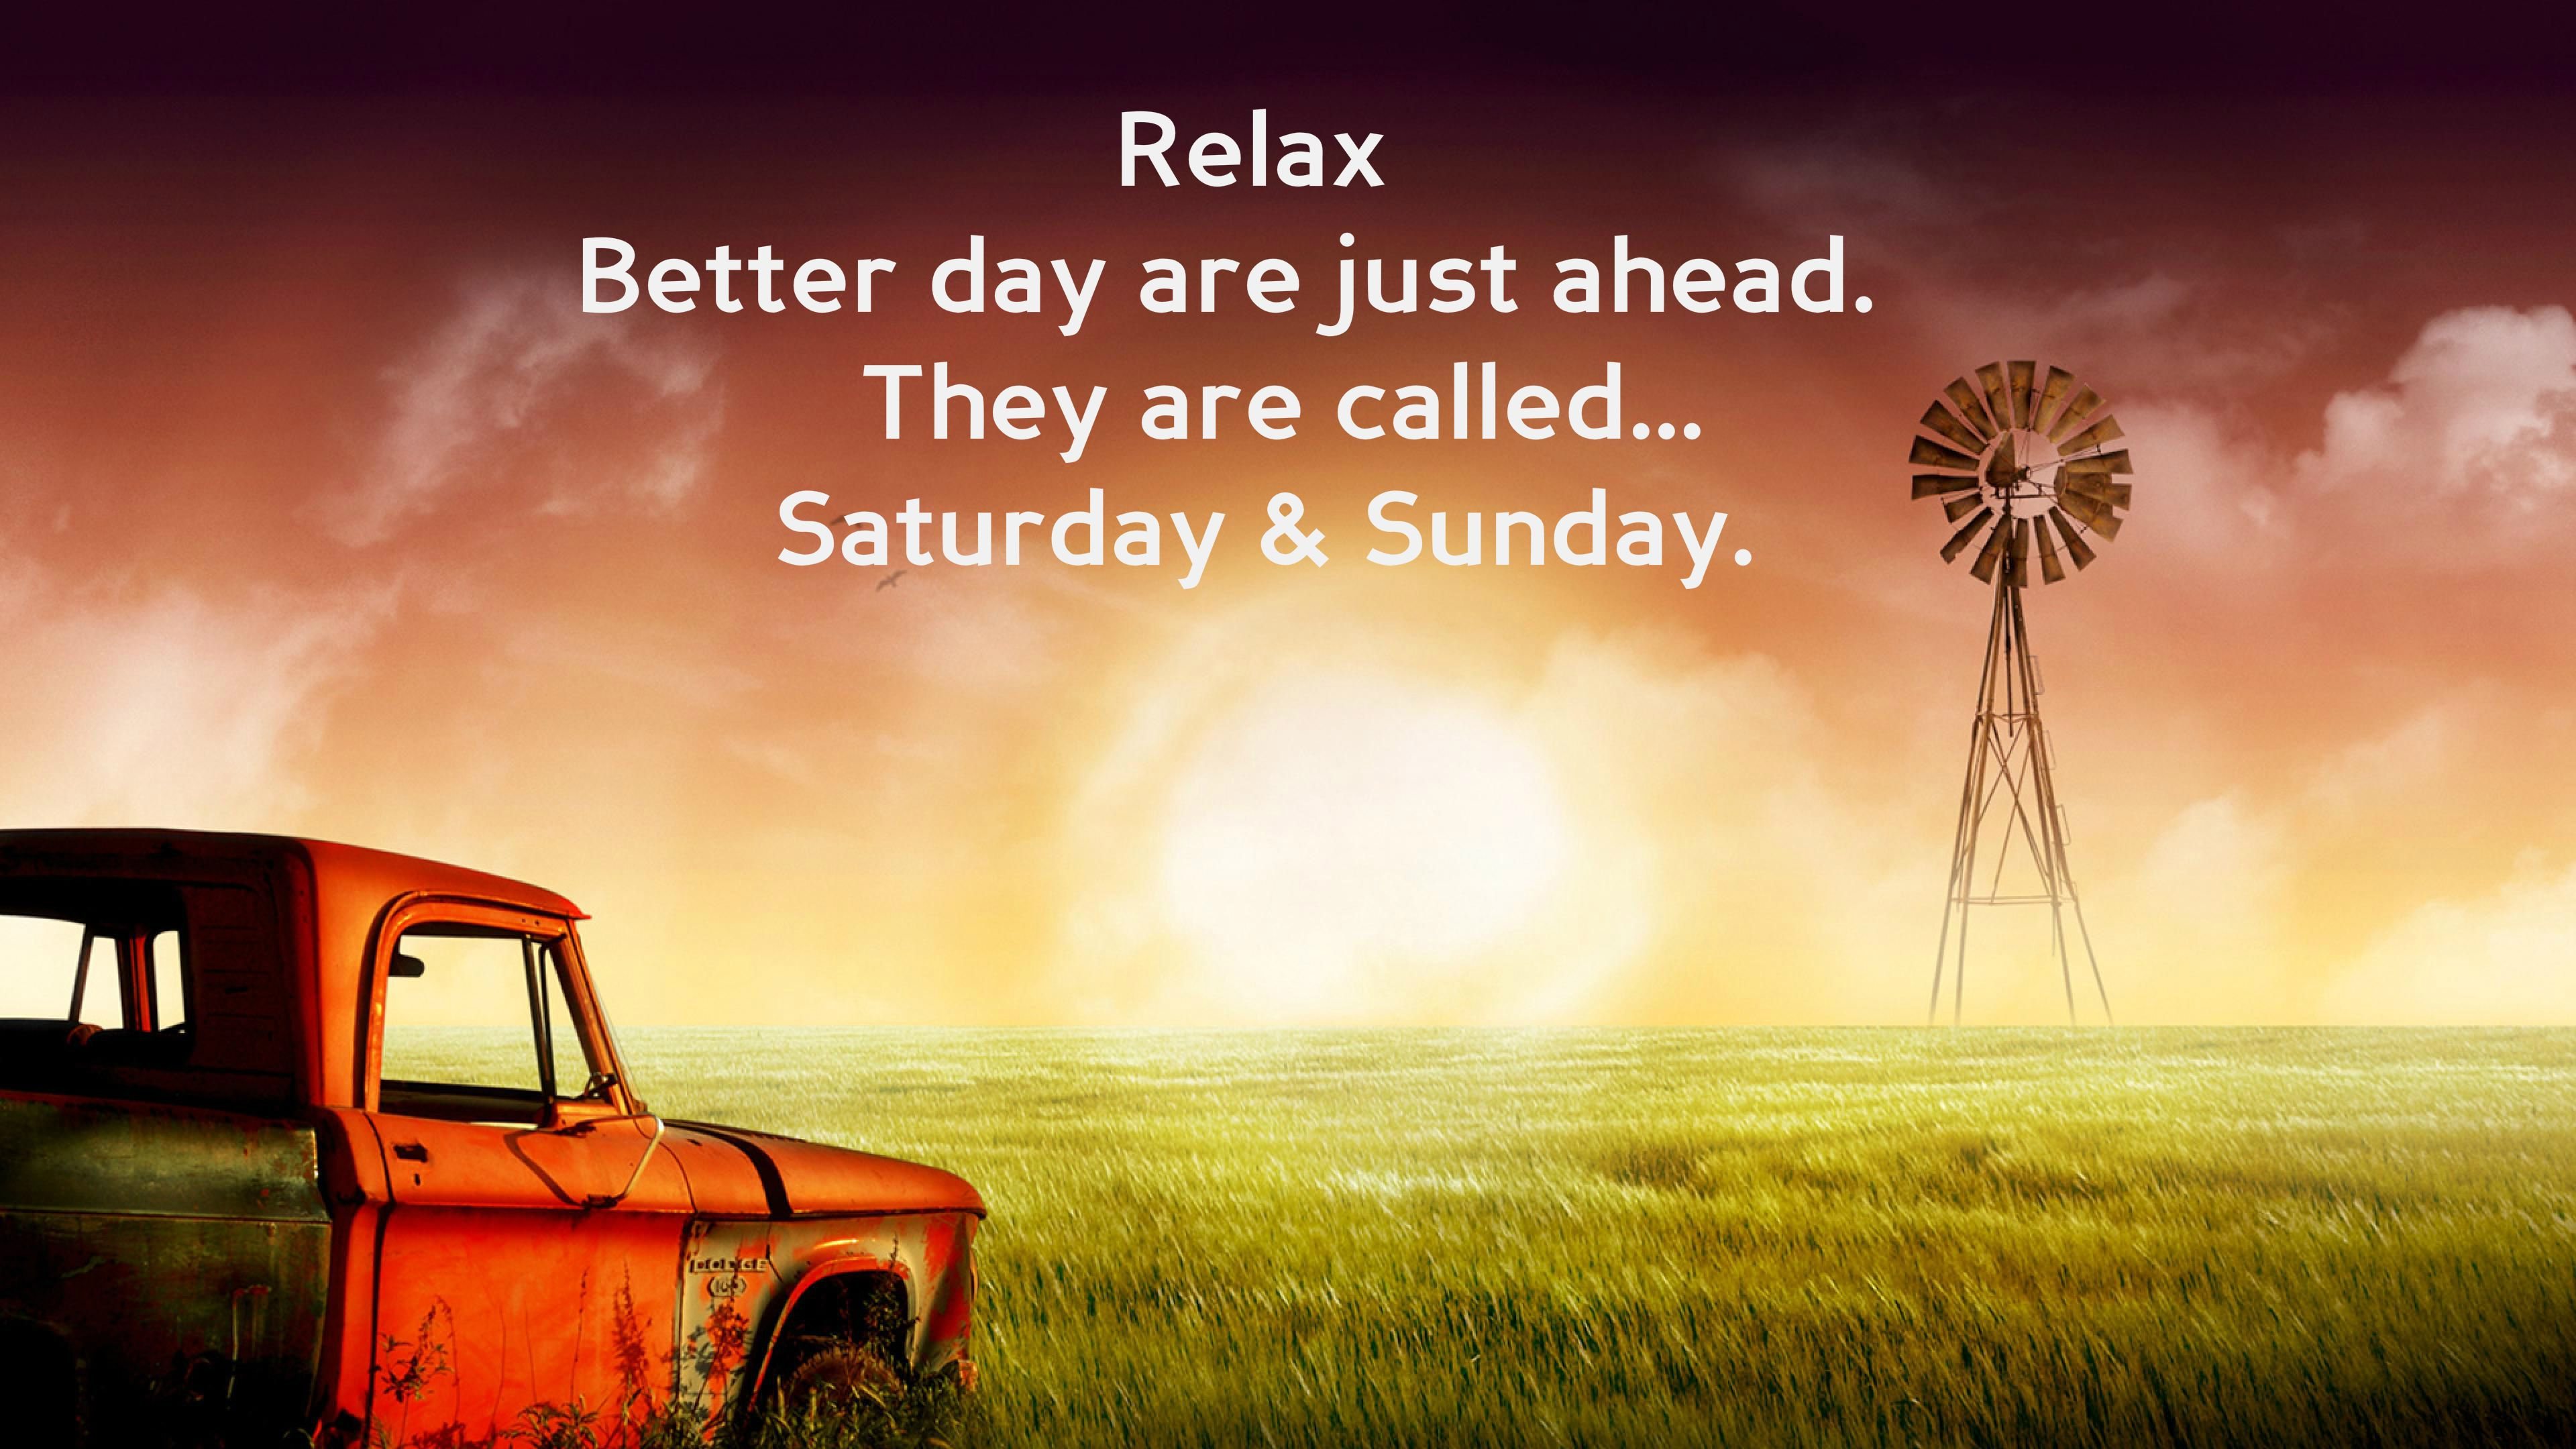 "#SaturdayQuote: ""Relax. Better days are just ahead. They are called... Saturday & Sunday."" (anonymous) #Weekend #Enjoy #HaveaGreatOne!"